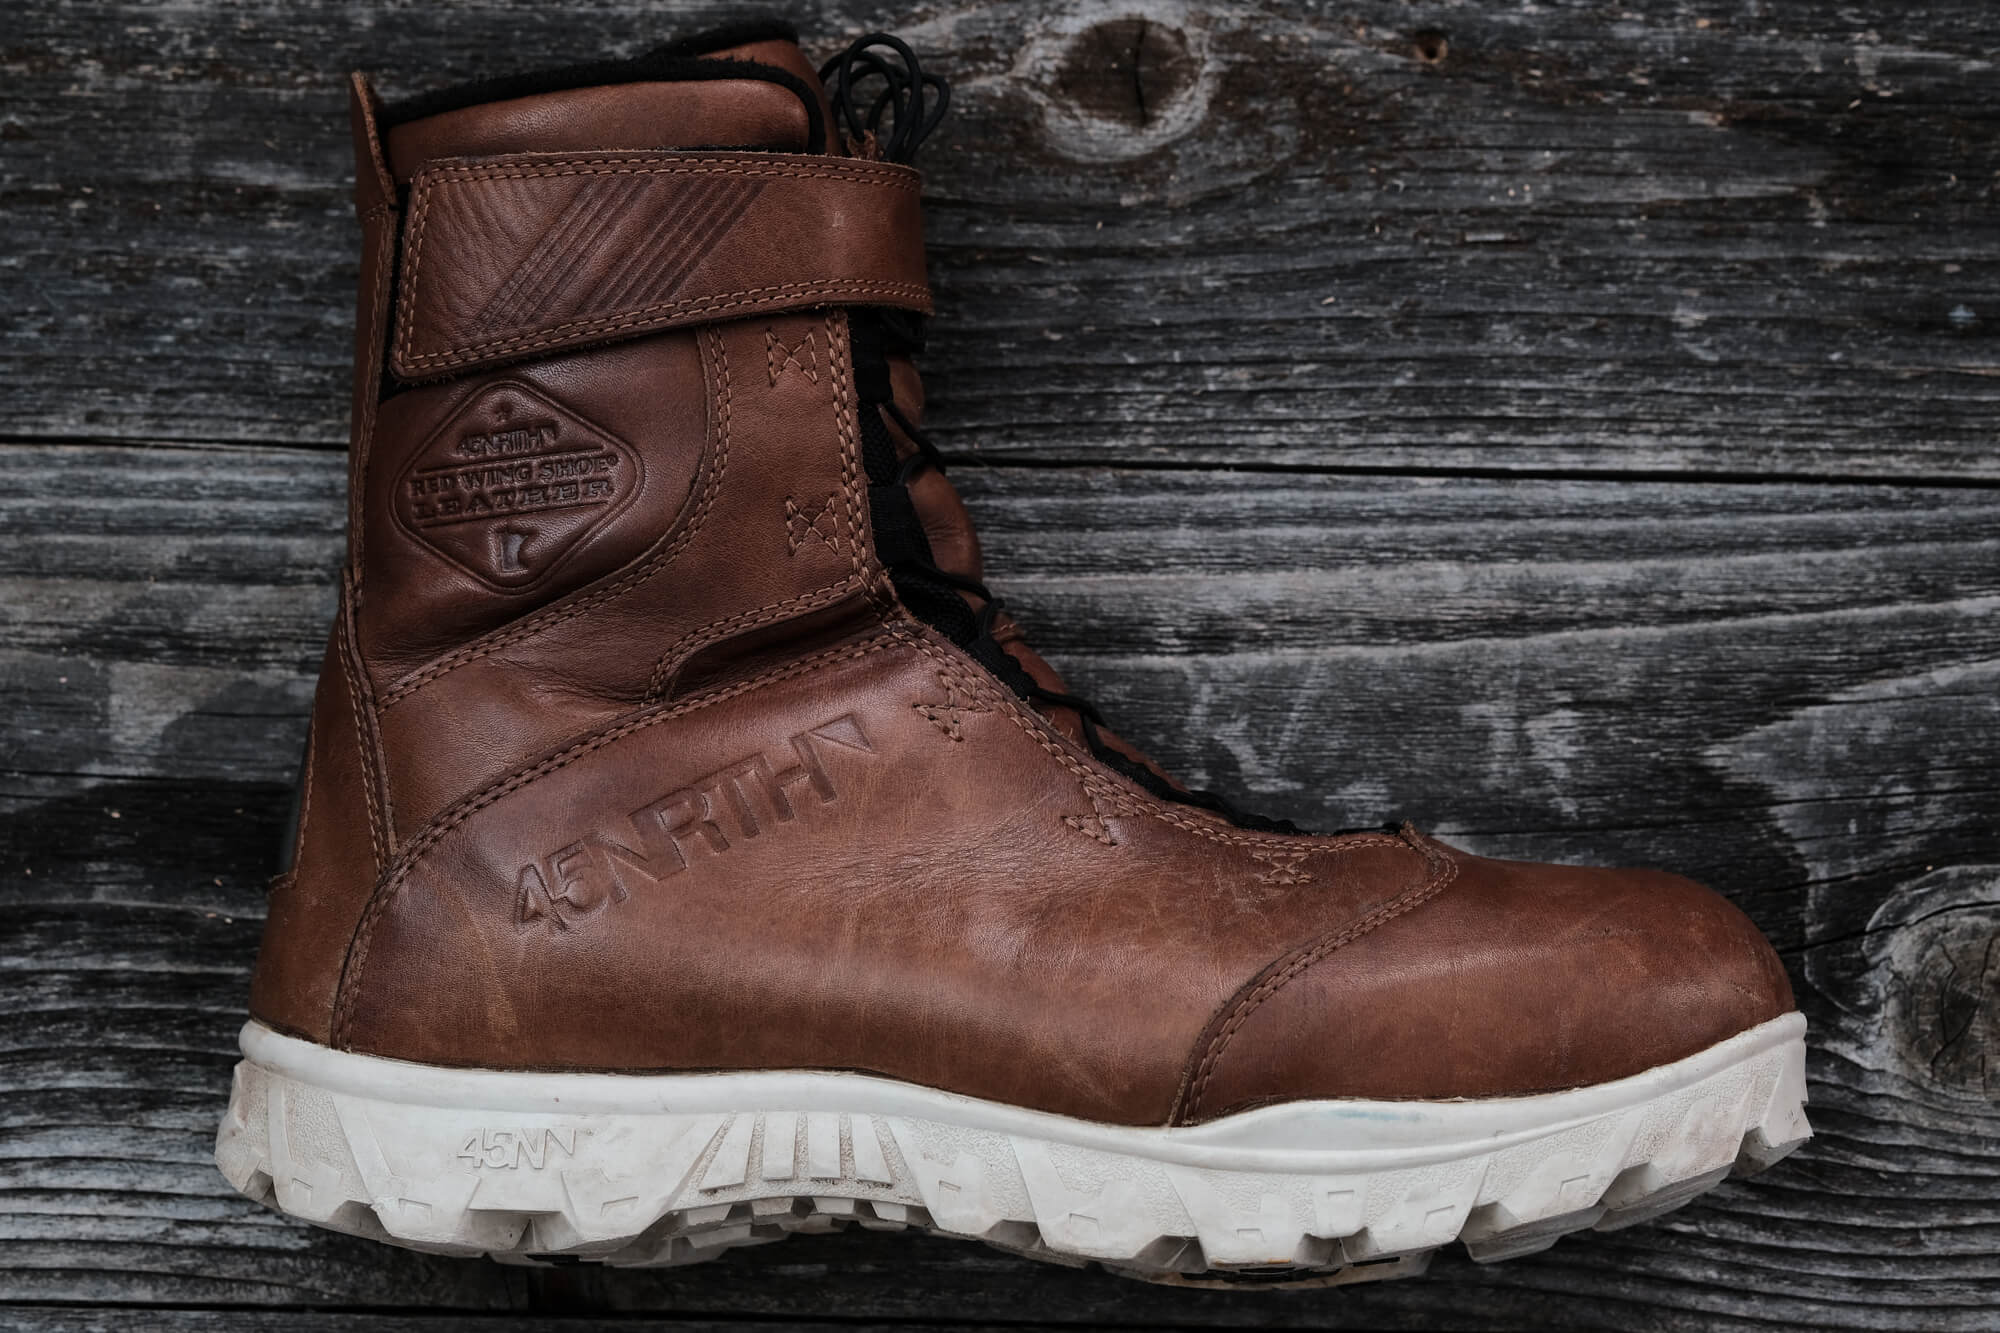 45NRTH Red Wing Wölvhammer cycling boot with leather lightened after Naturseal has dried